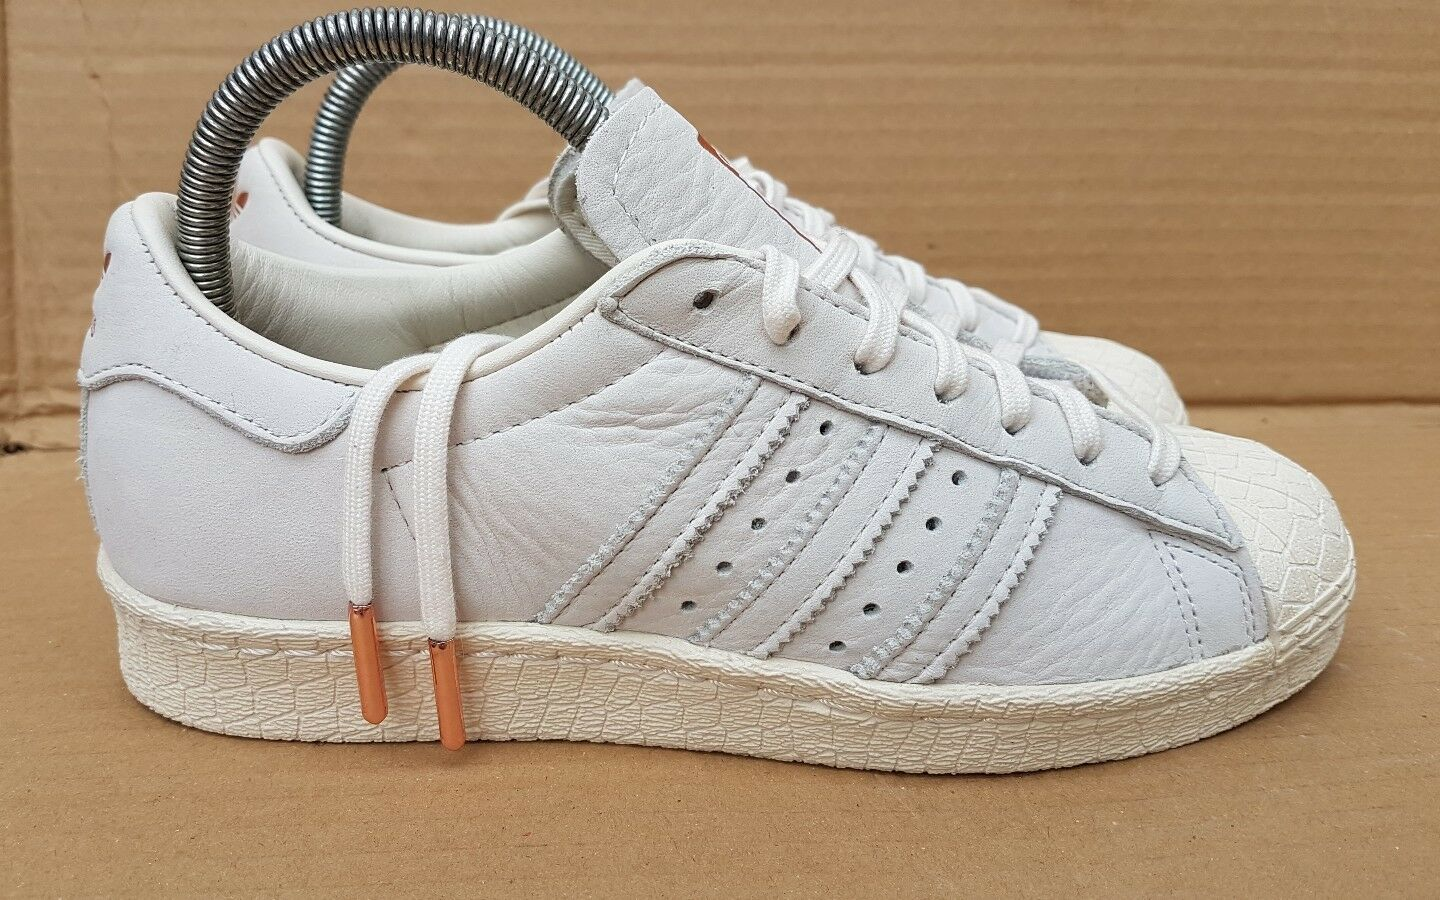 Sale Femme Adidas Originals Superstar W BA8169 Girls Trainers blanc Gold chaussures